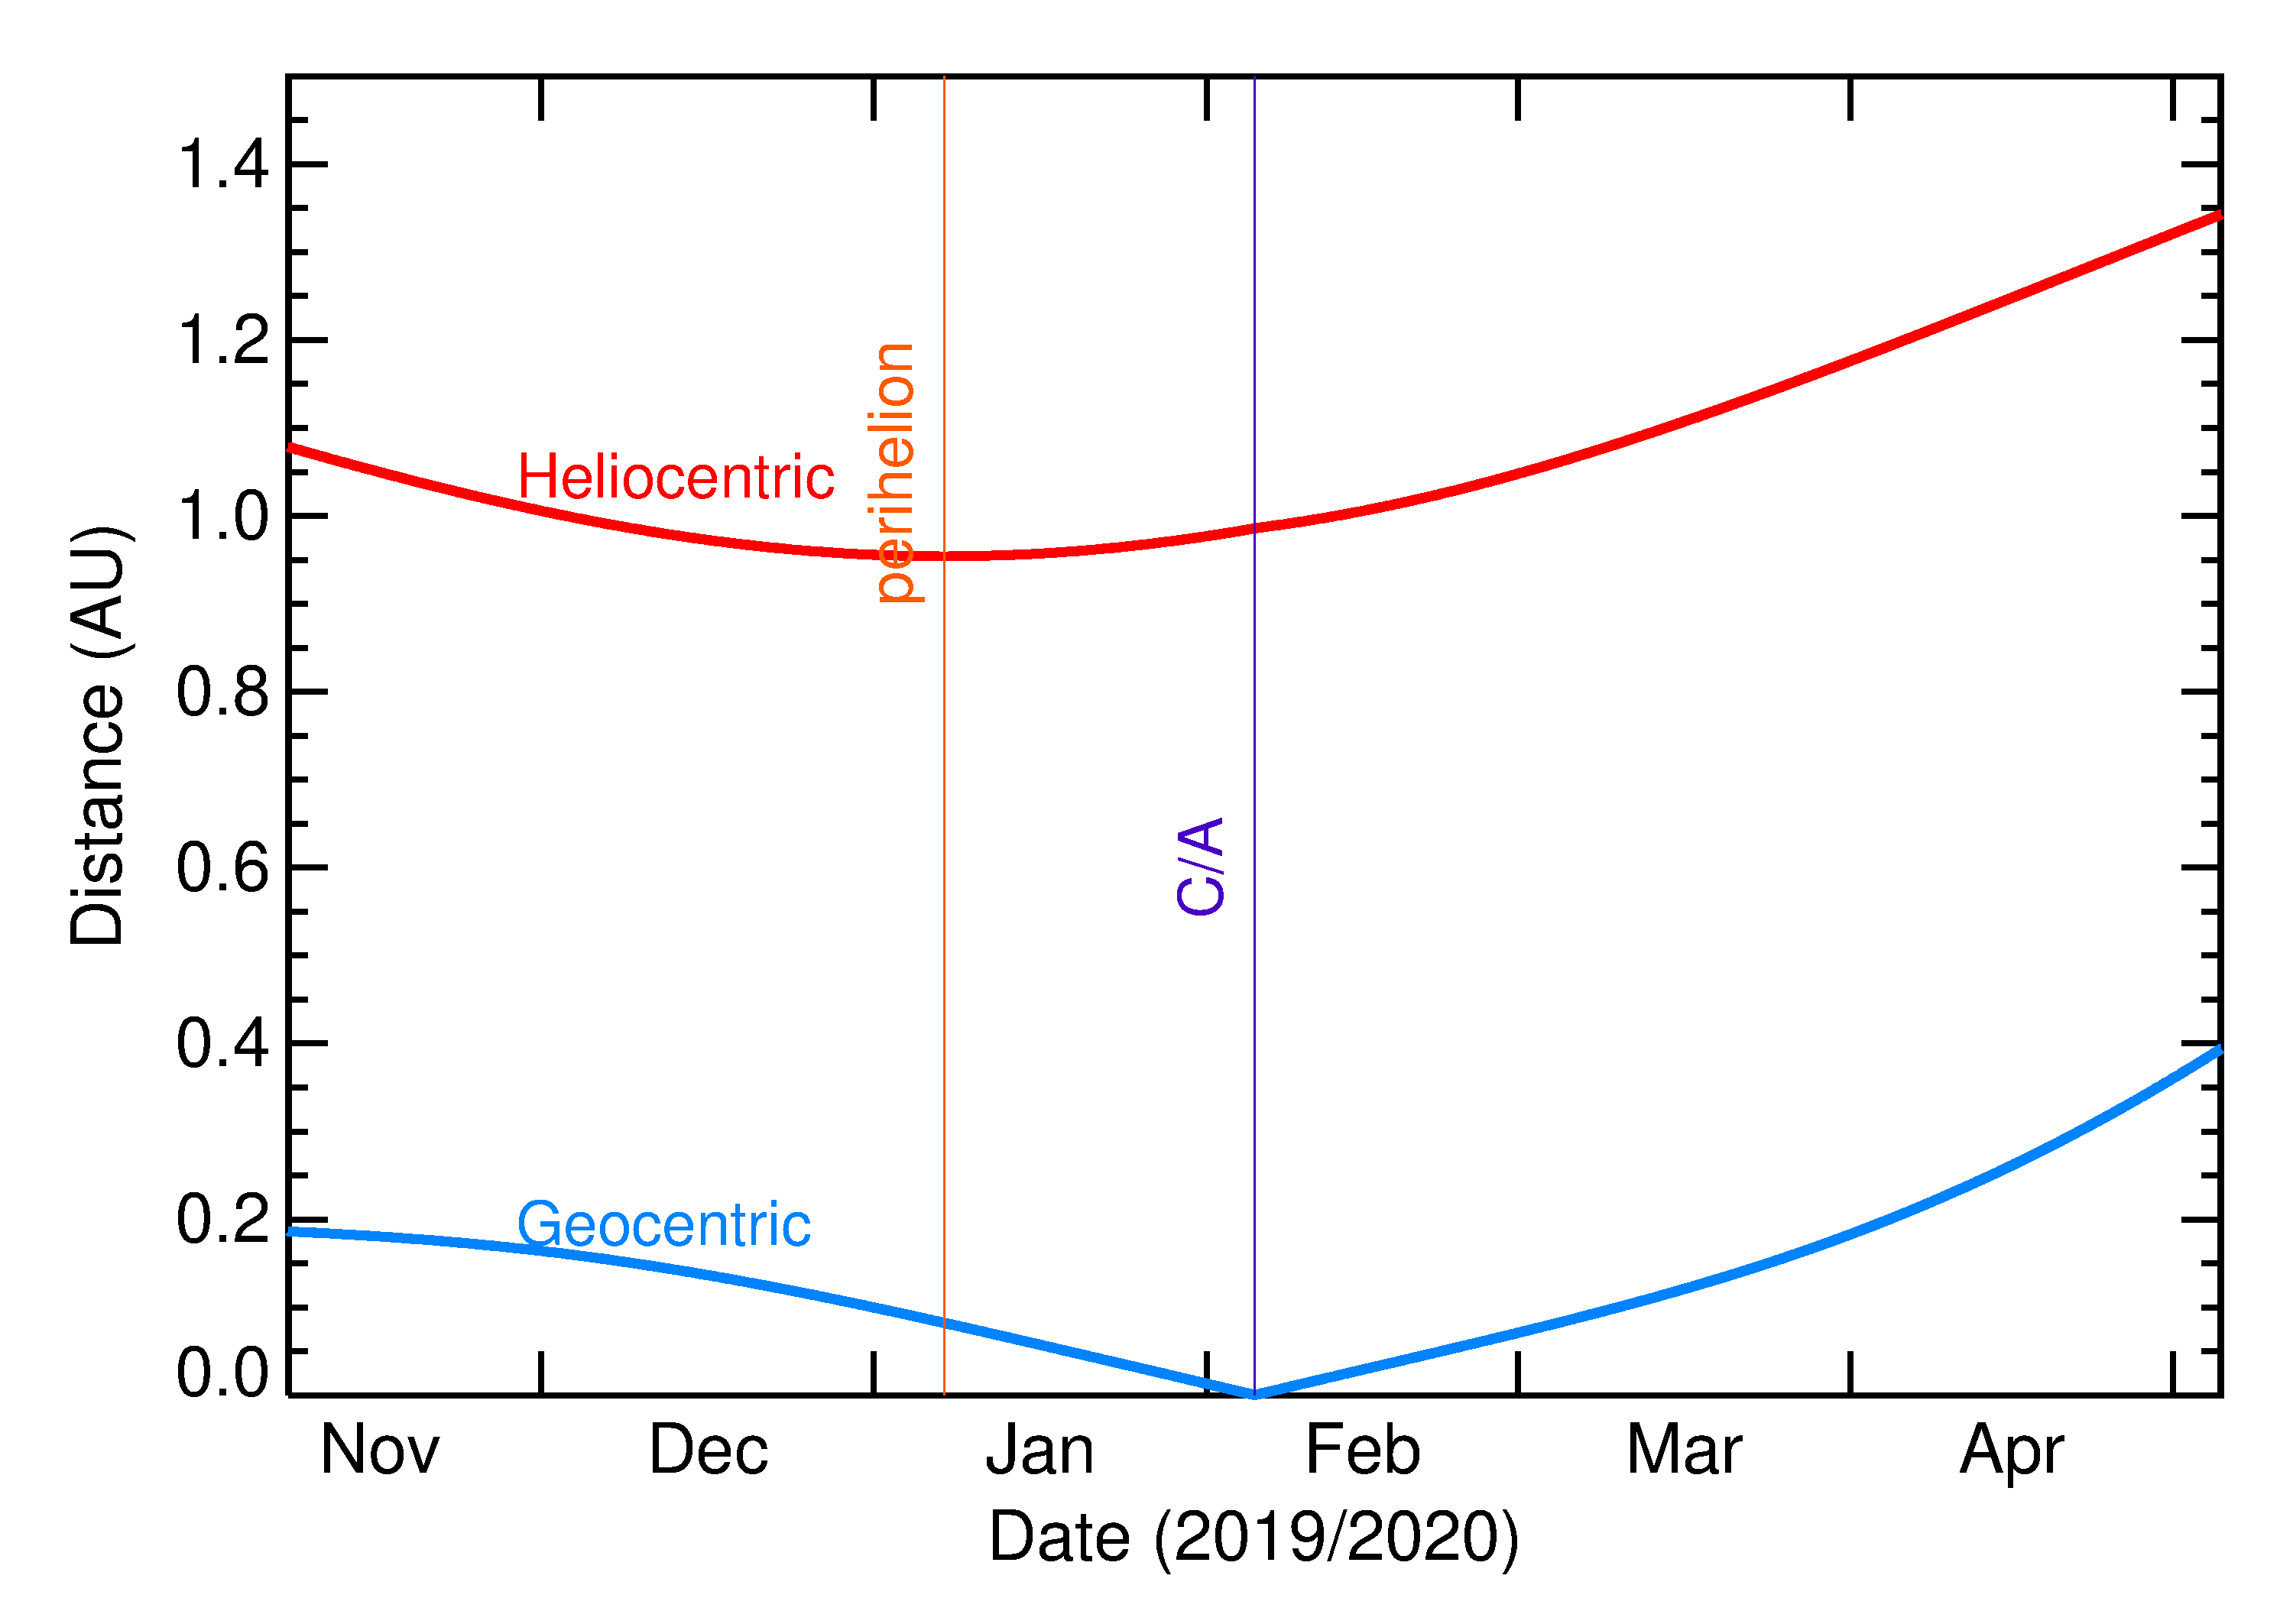 Heliocentric and Geocentric Distances of 2020 CQ1 in the months around closest approach